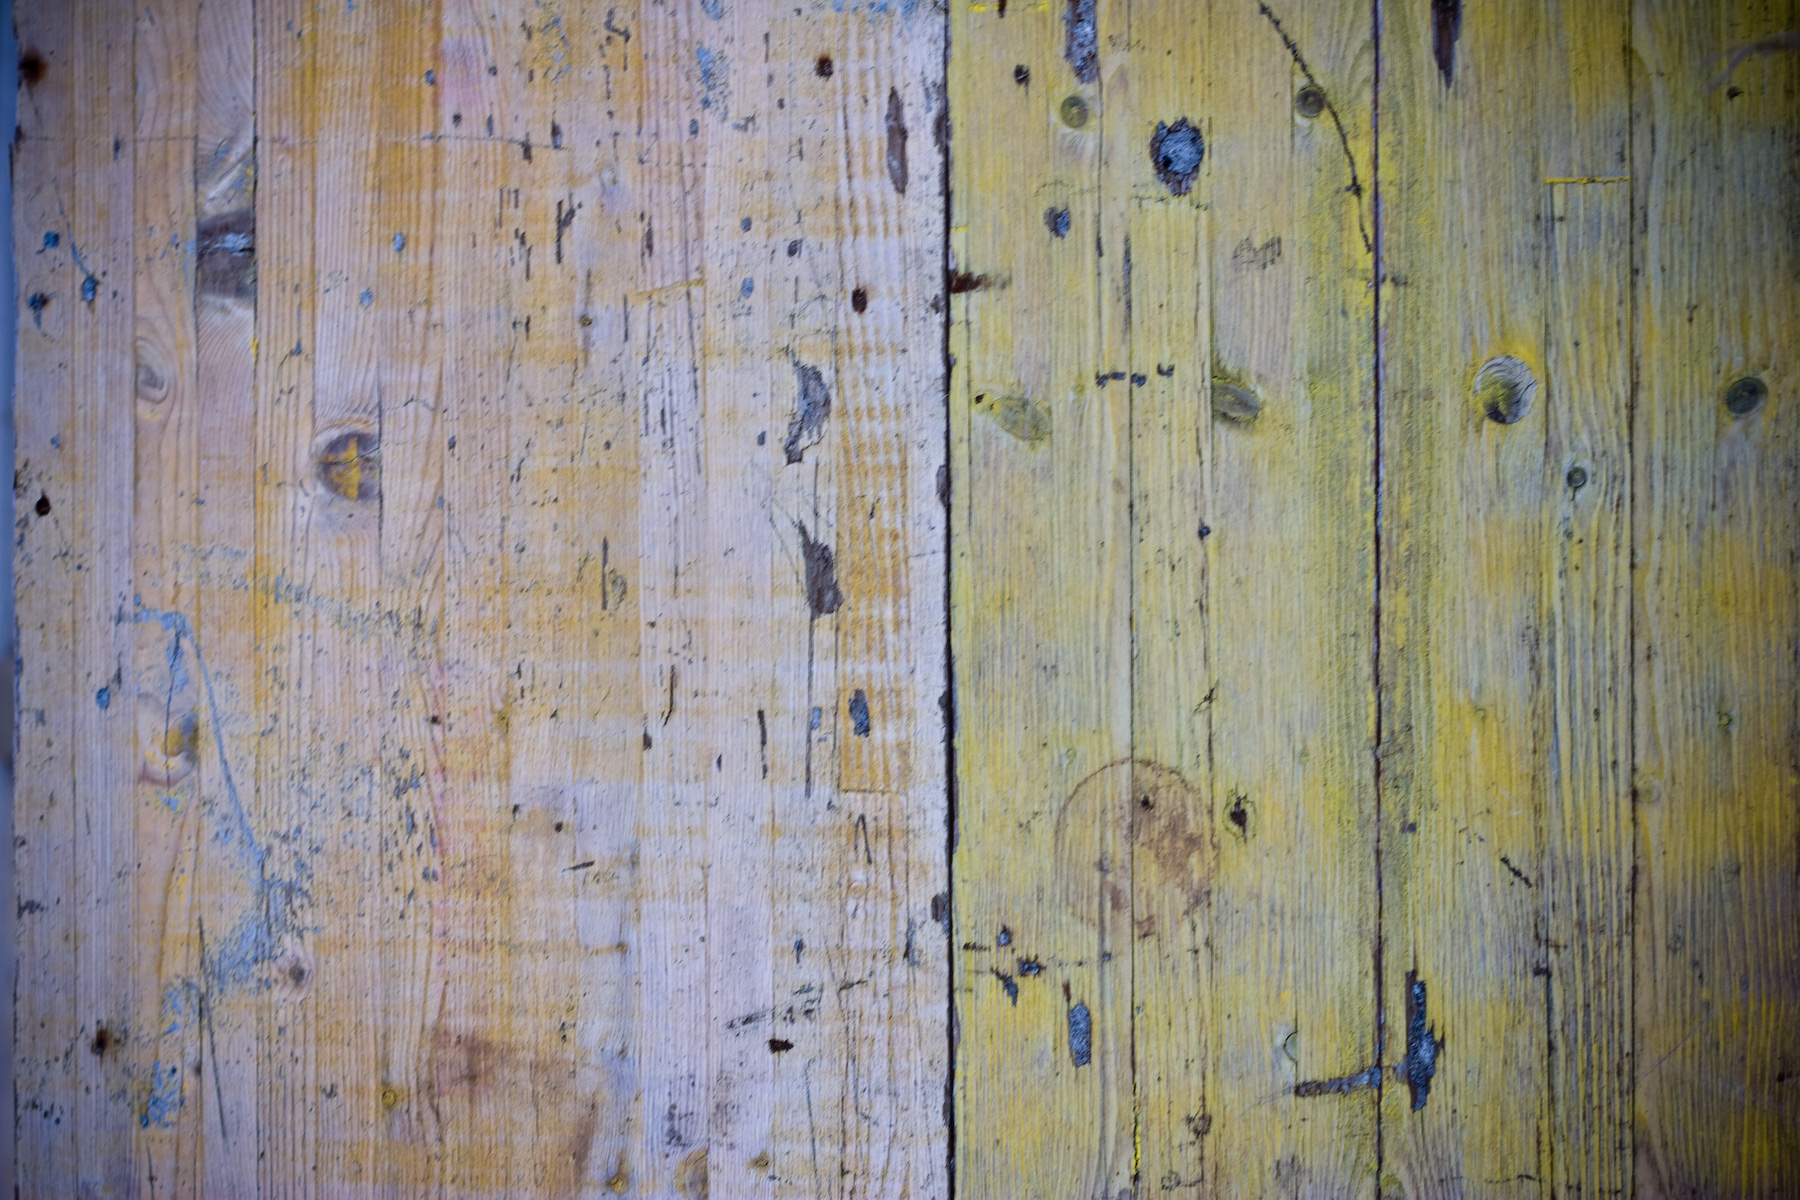 Wooden texture, Cement, Cracks, Dry, Splatter, HQ Photo